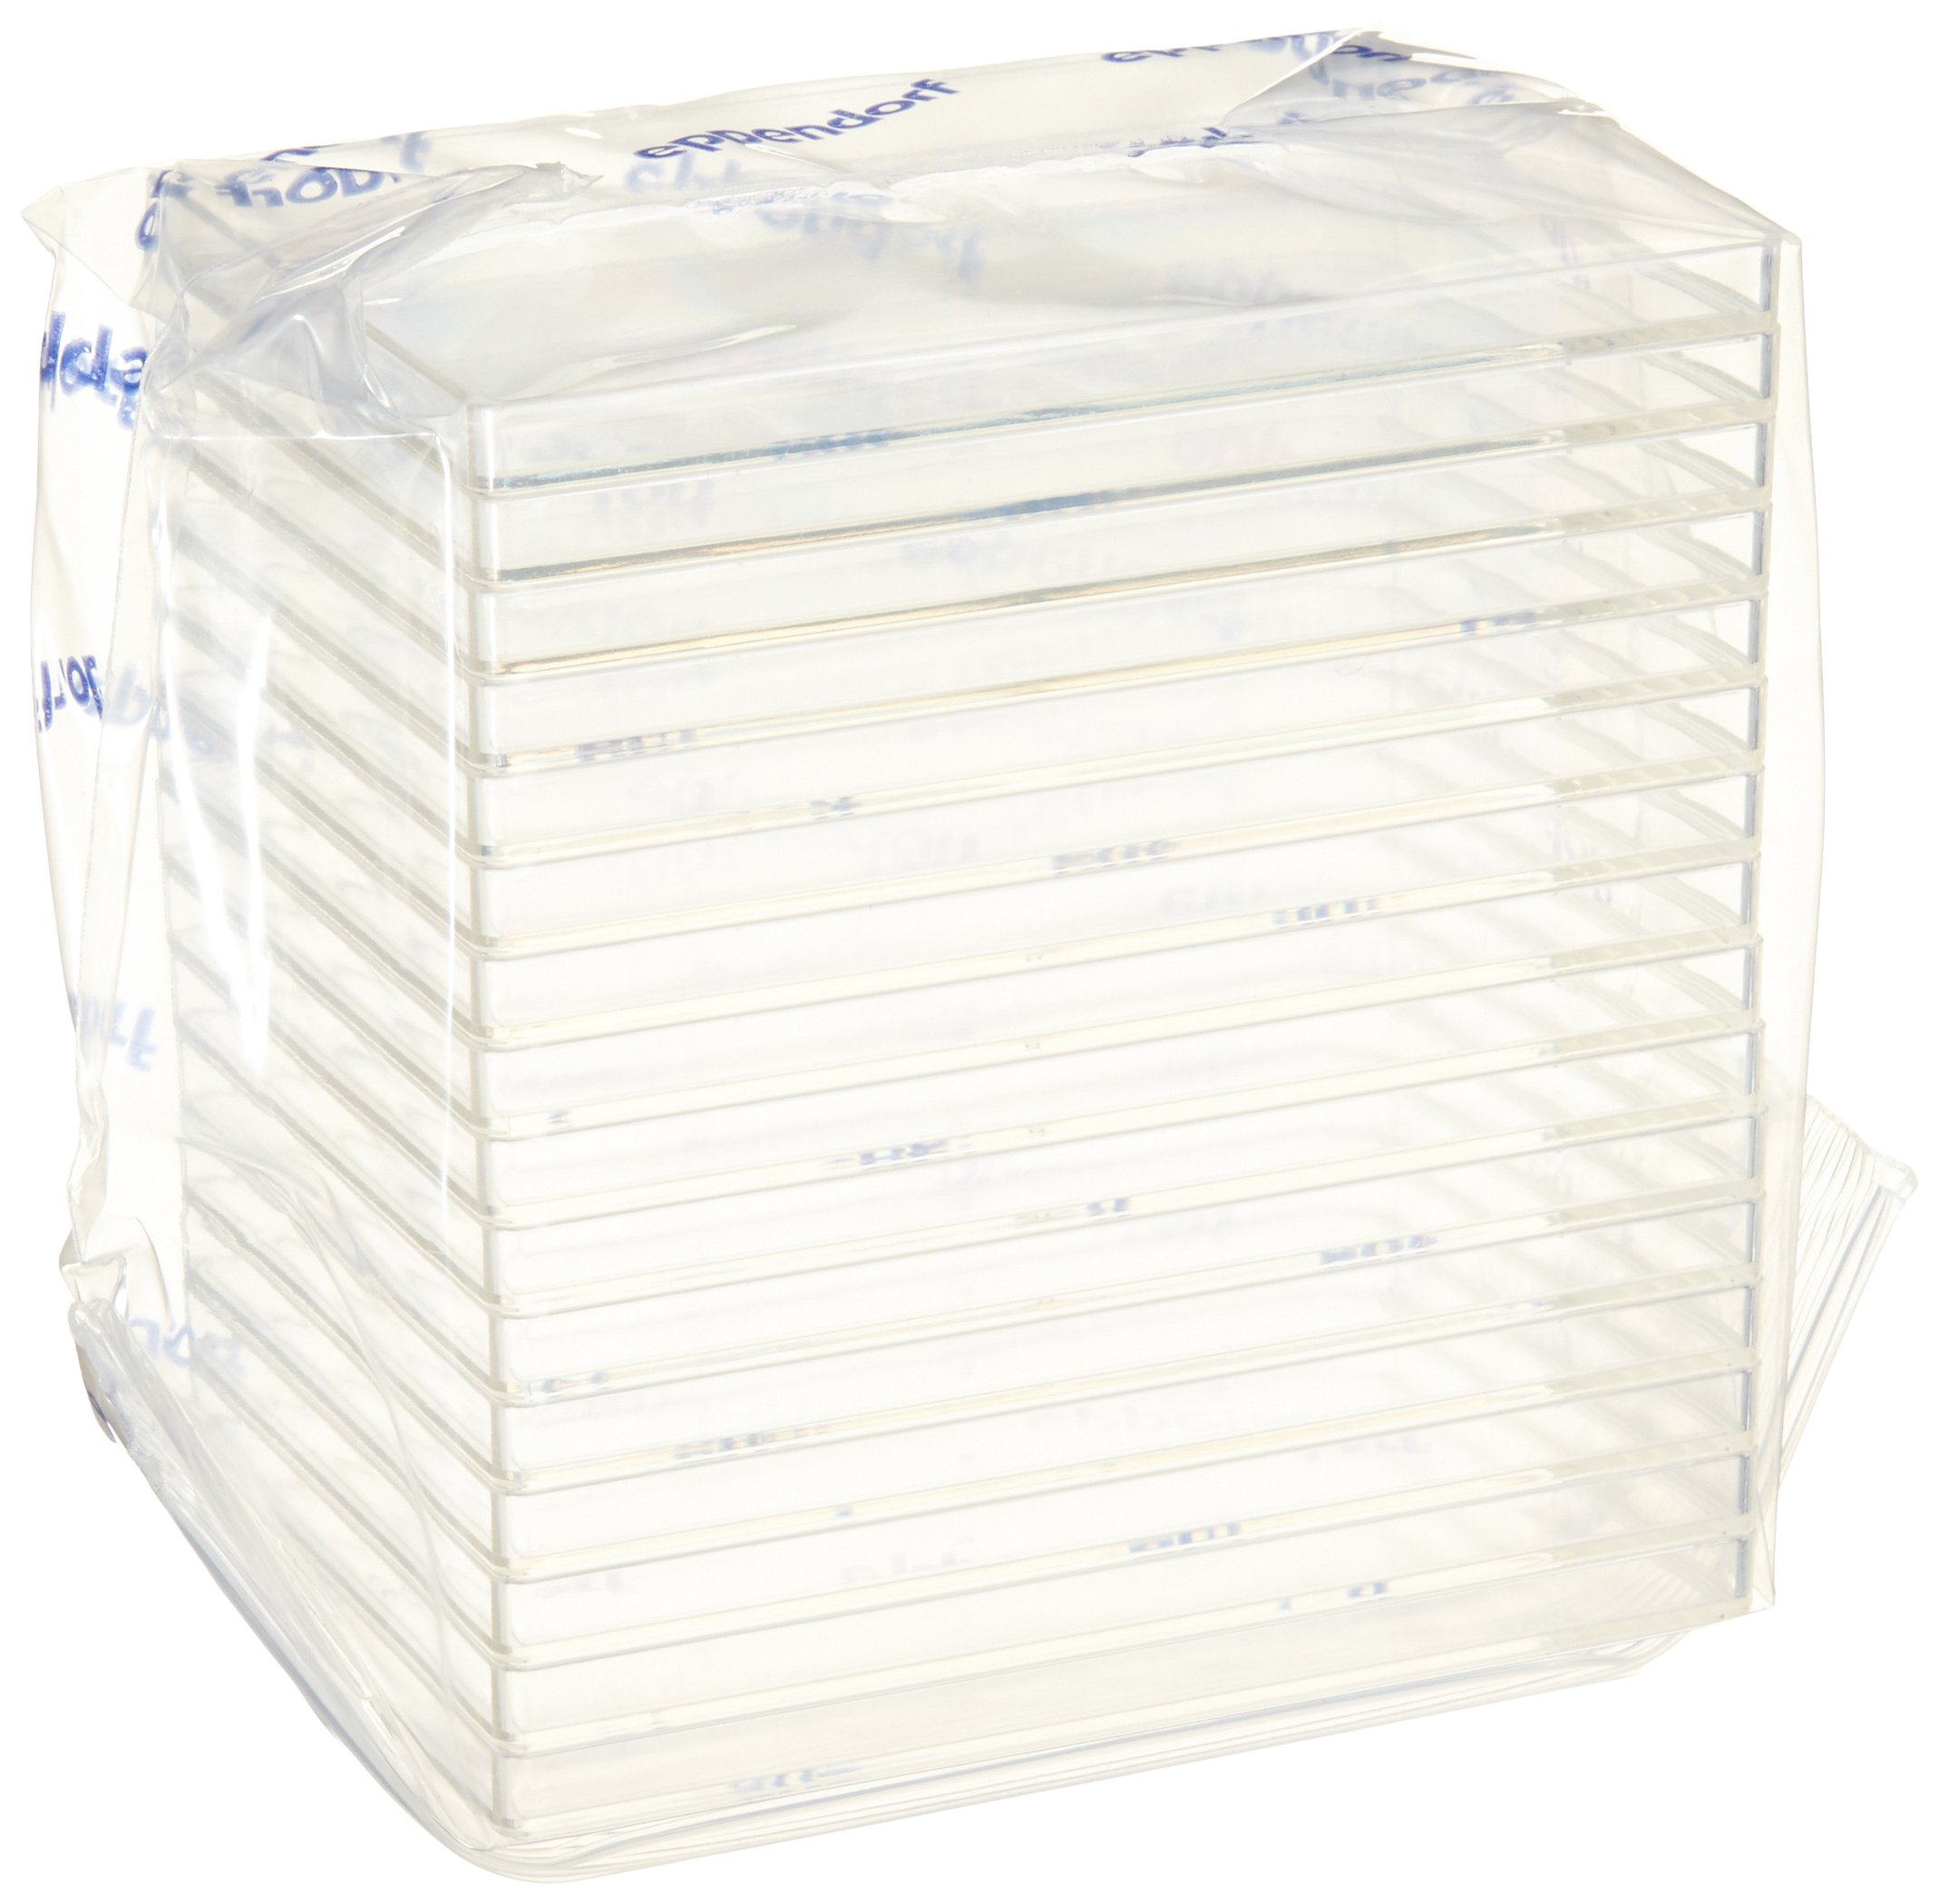 Eppendorf 0030 131.525 Sterile Plate Lid (Pack of 80)